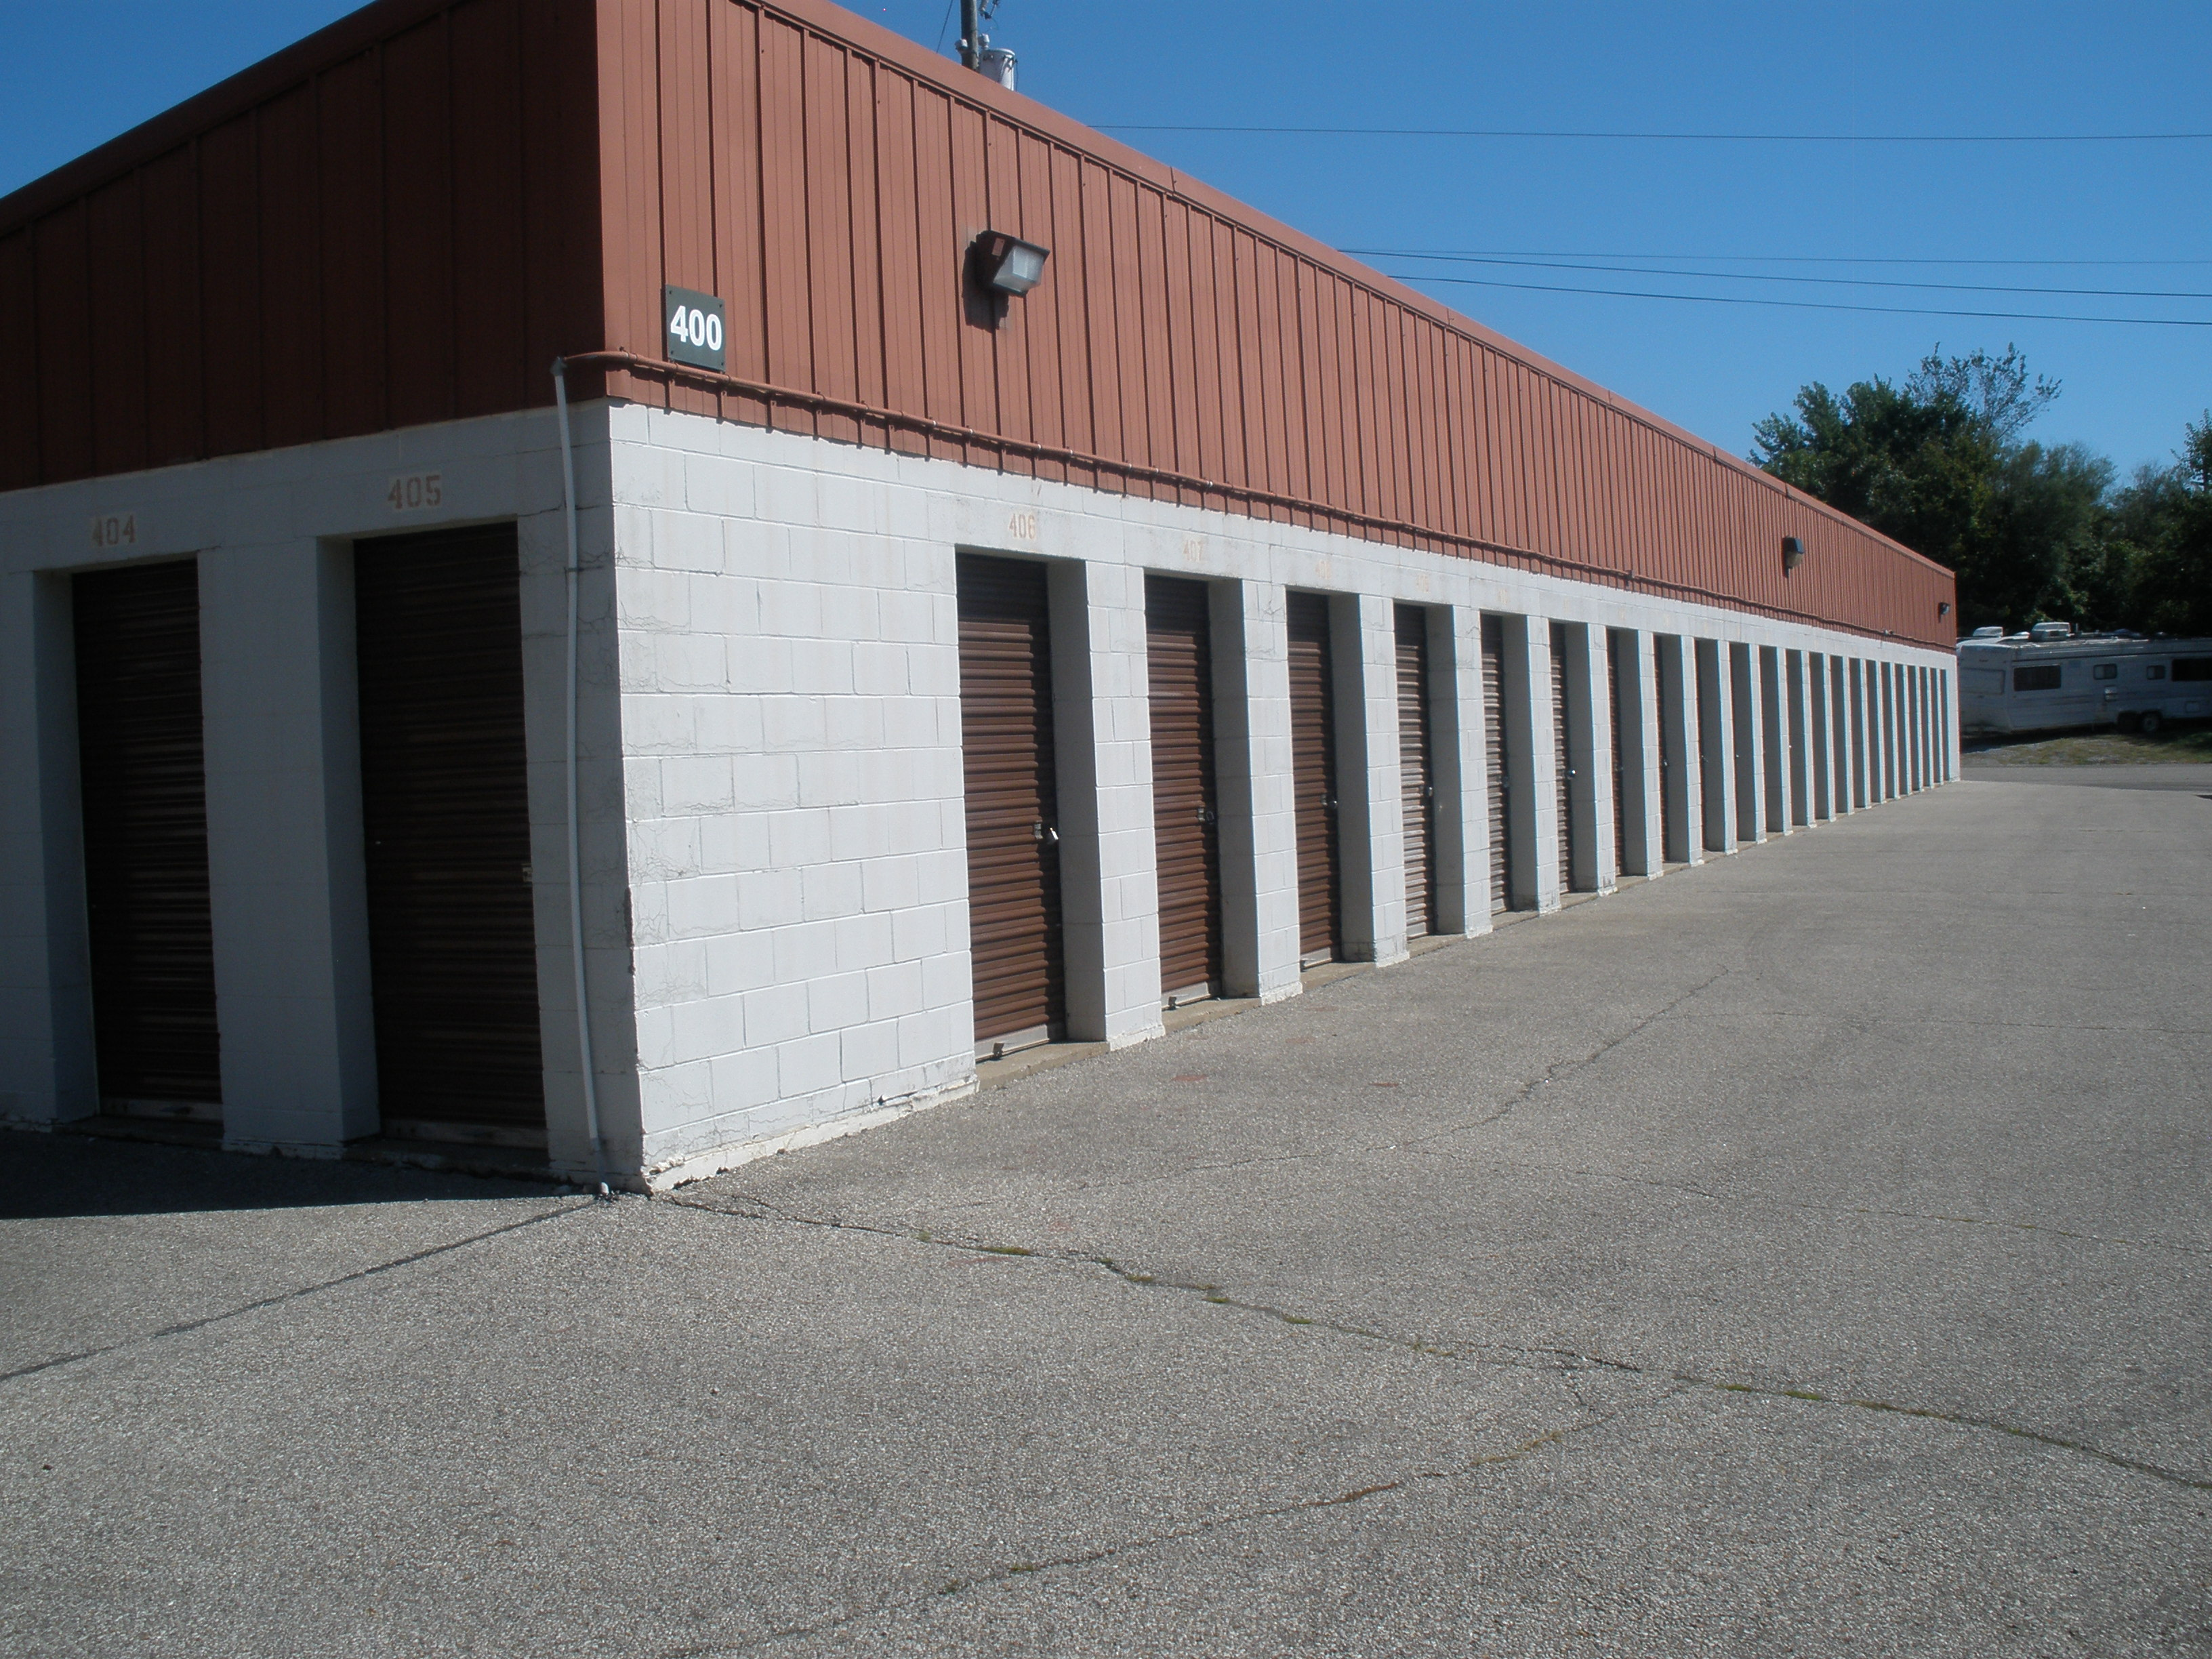 security features and outdoor lighting for safety milford oh